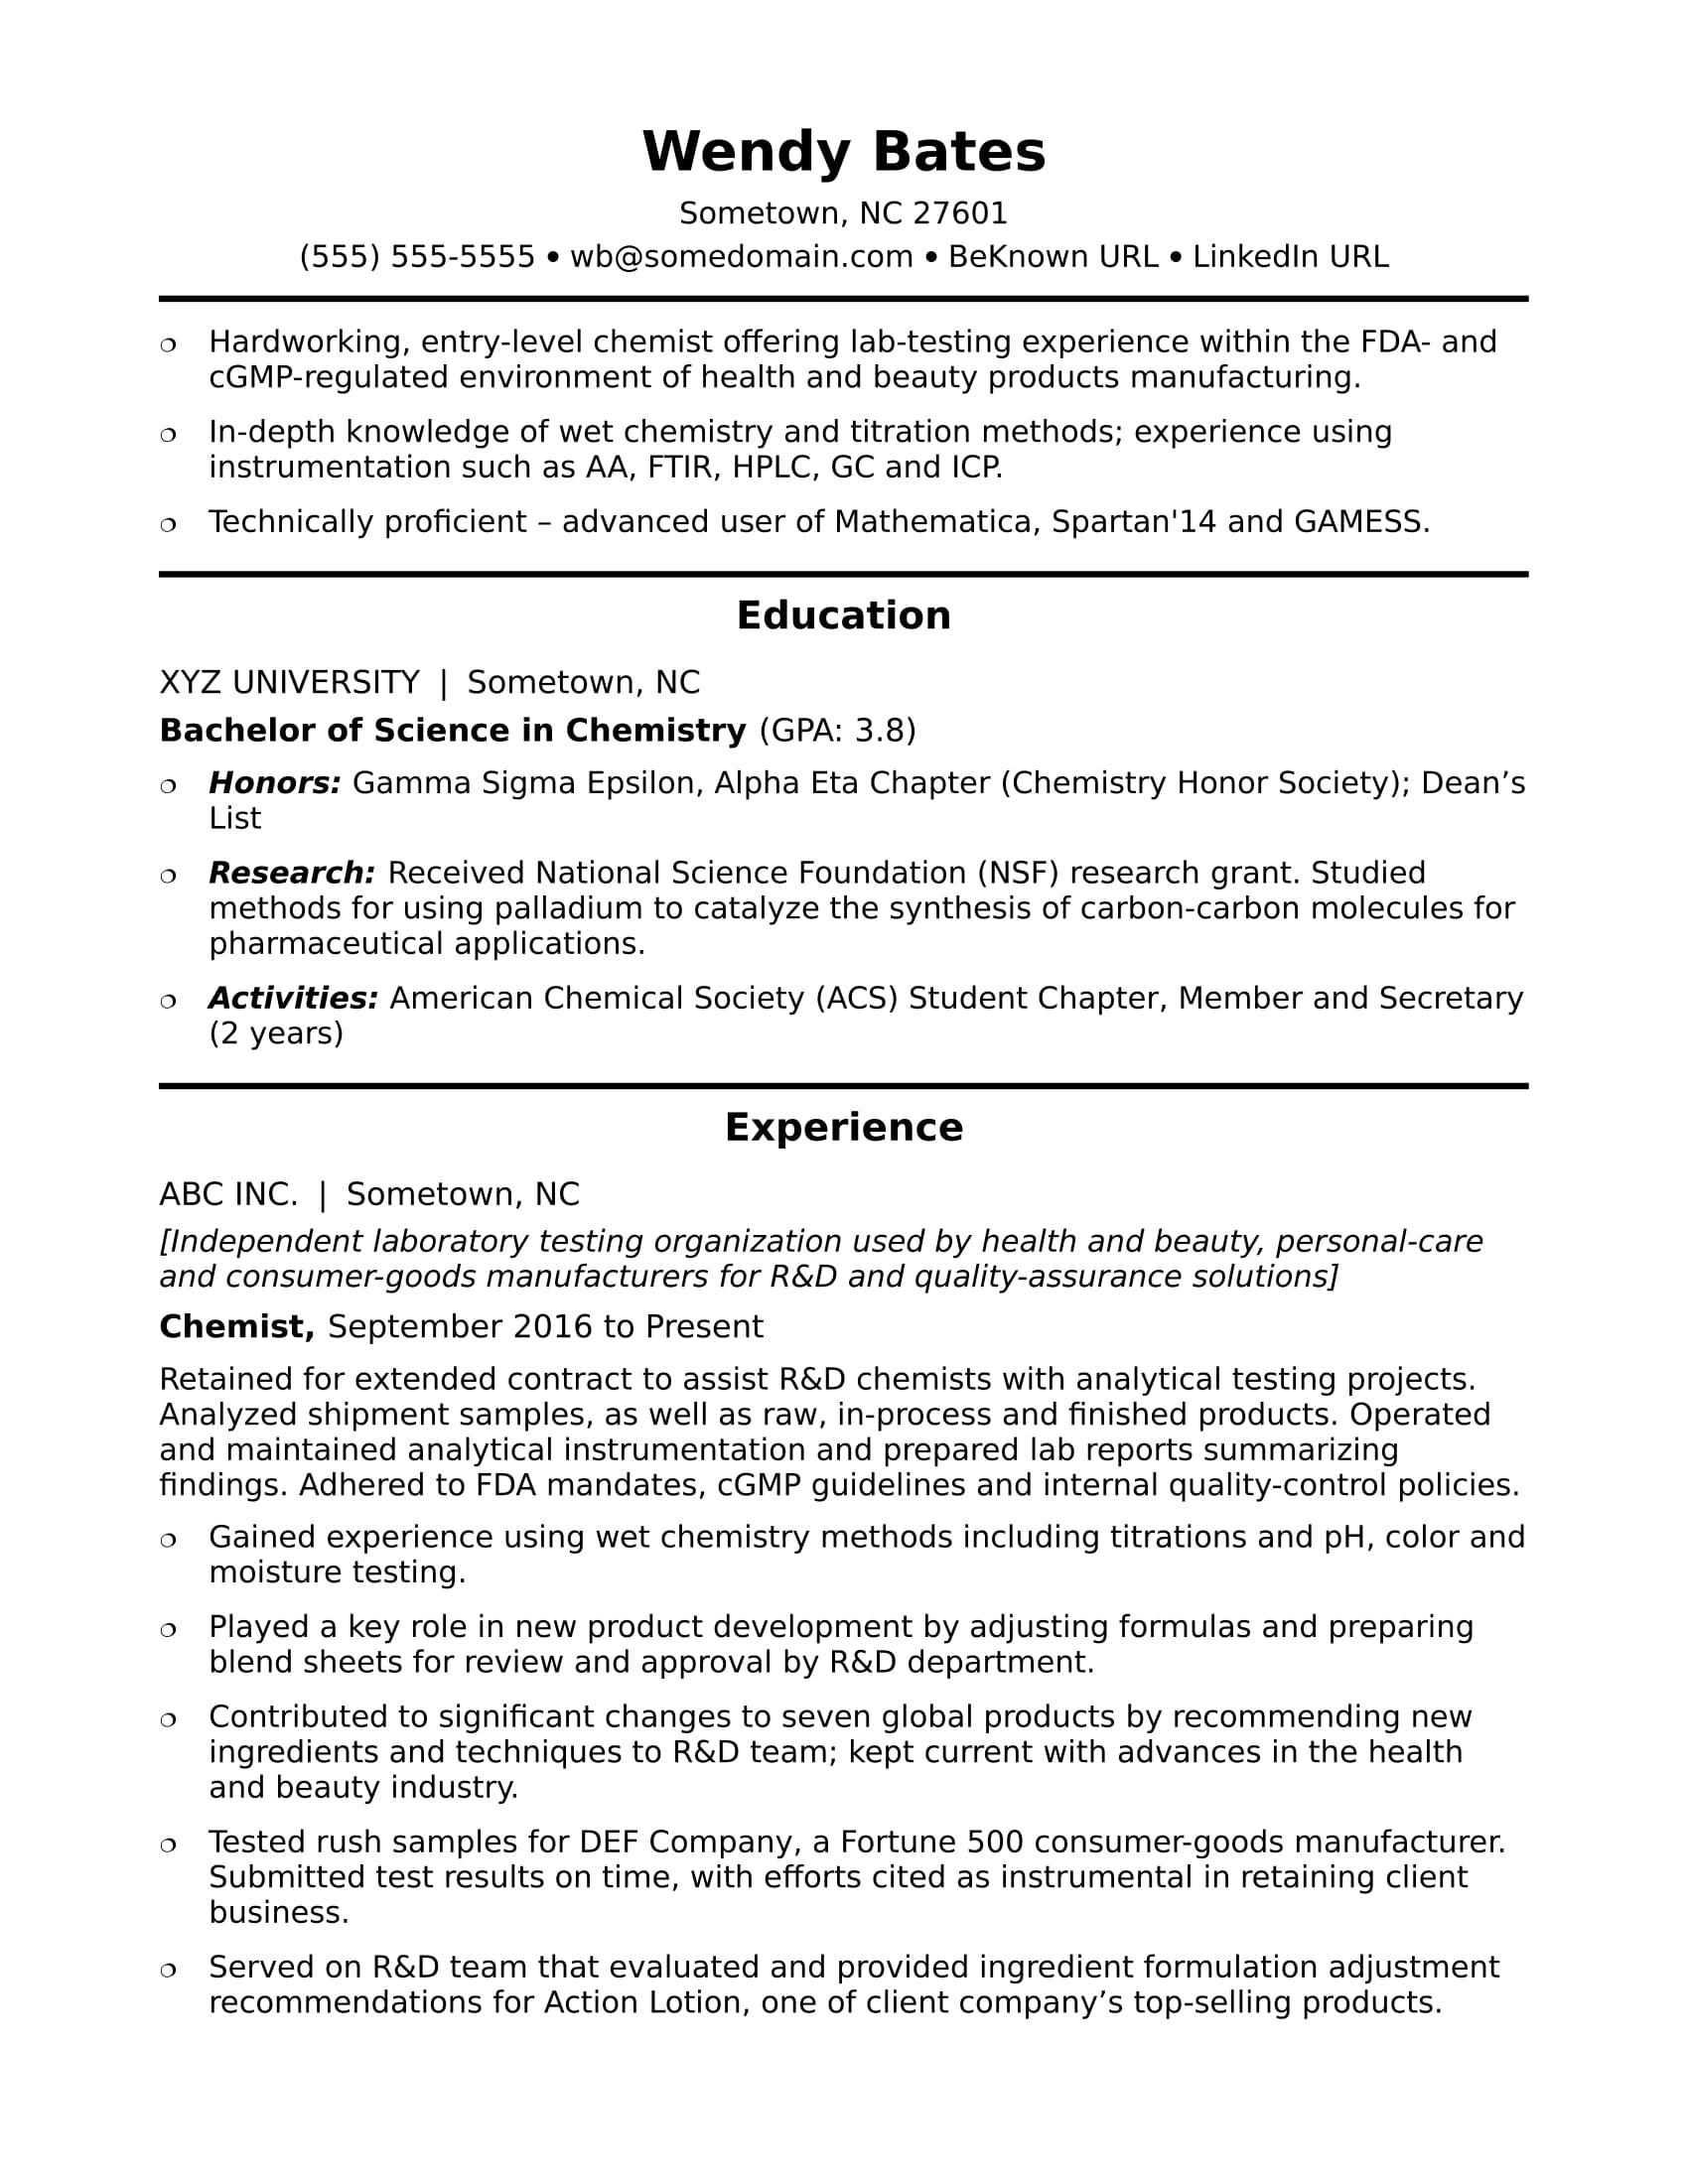 Sample Resume For An Entry Level Chemist  American Resume